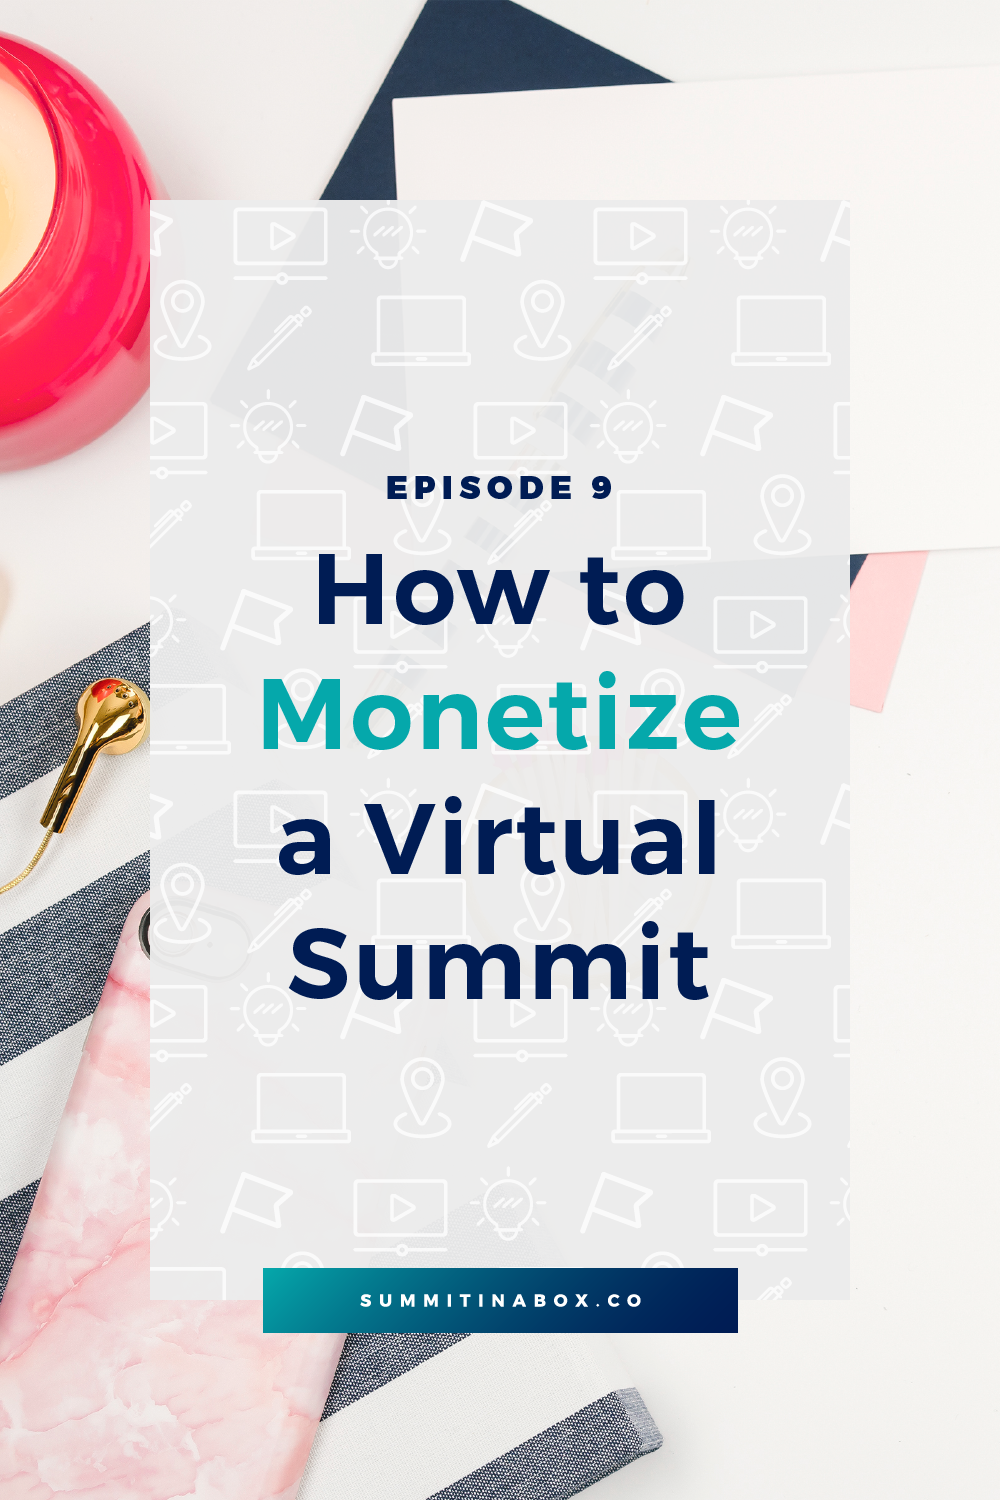 Wondering how to make money with a virtual summit? Let's break down 4 ways to monetize your free online event along with details on which is my favorite.